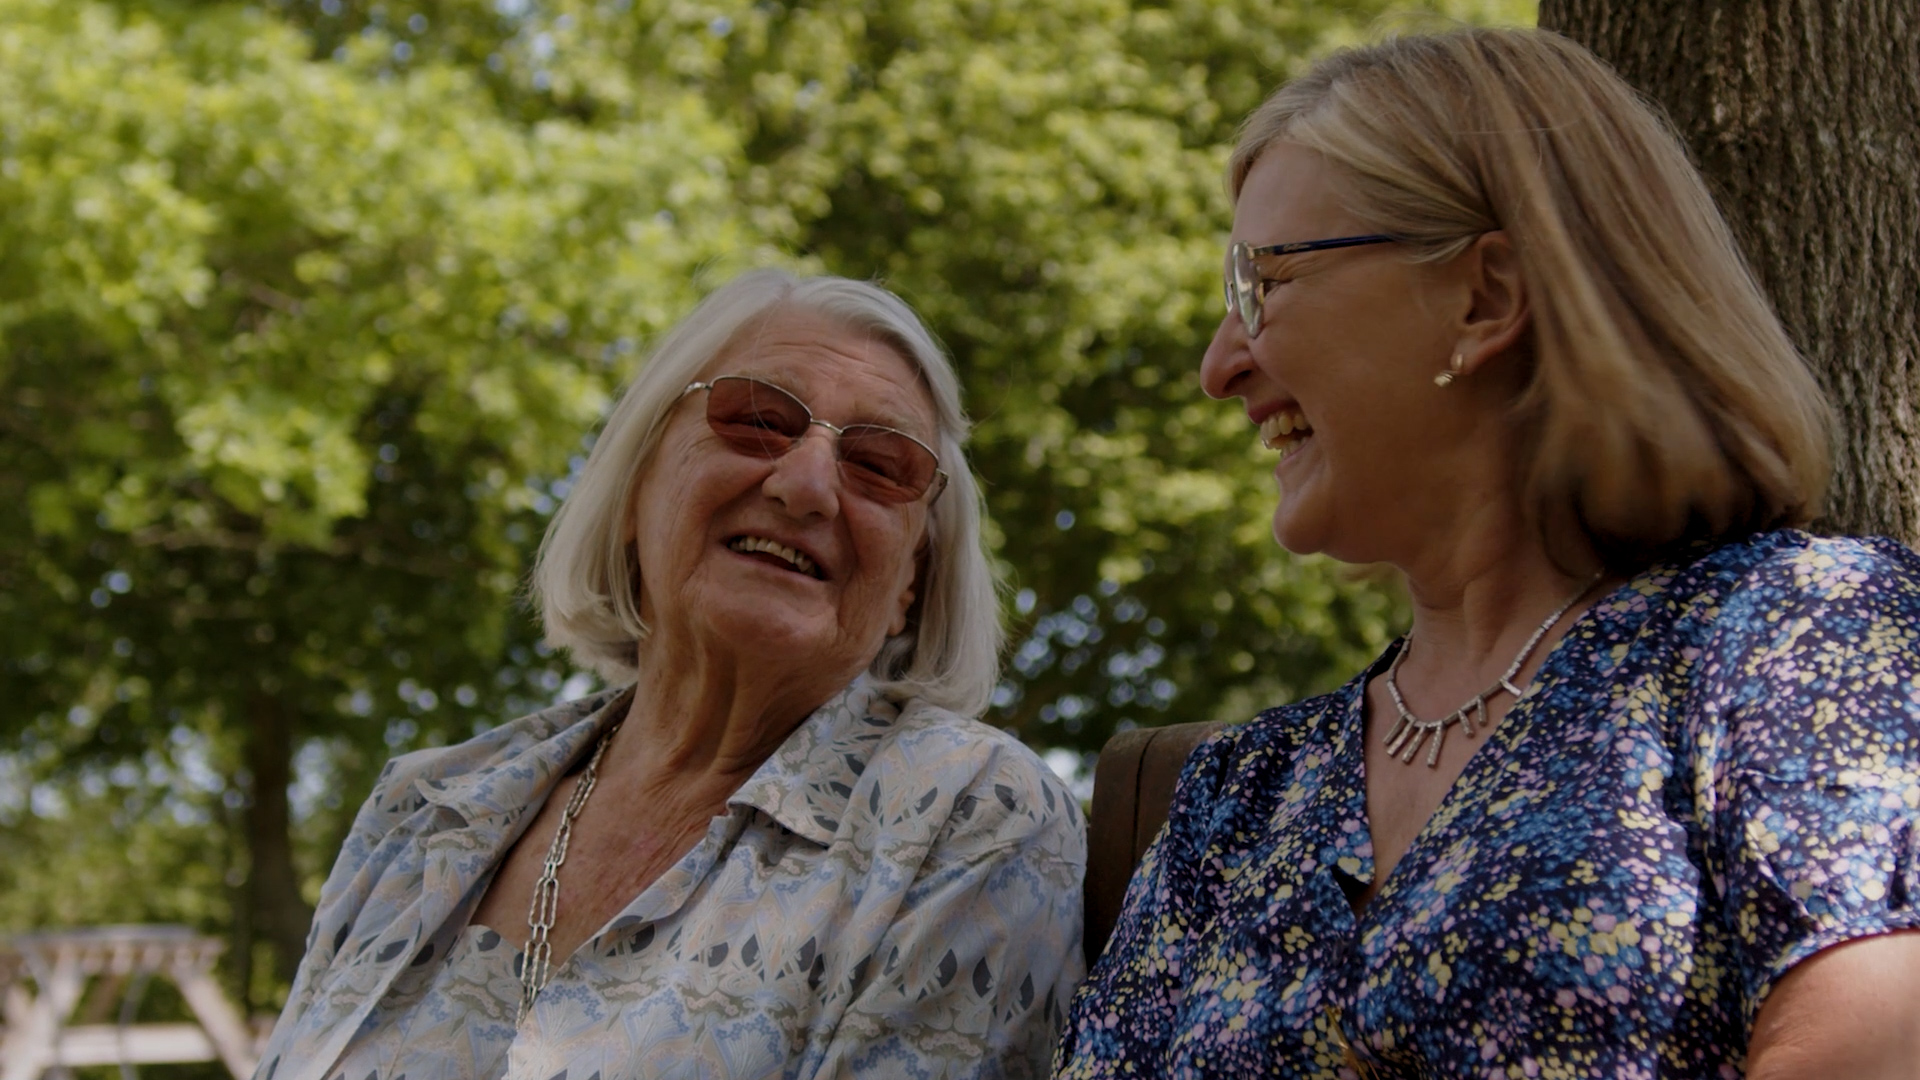 Louise and her mum in the Hospice Gardens